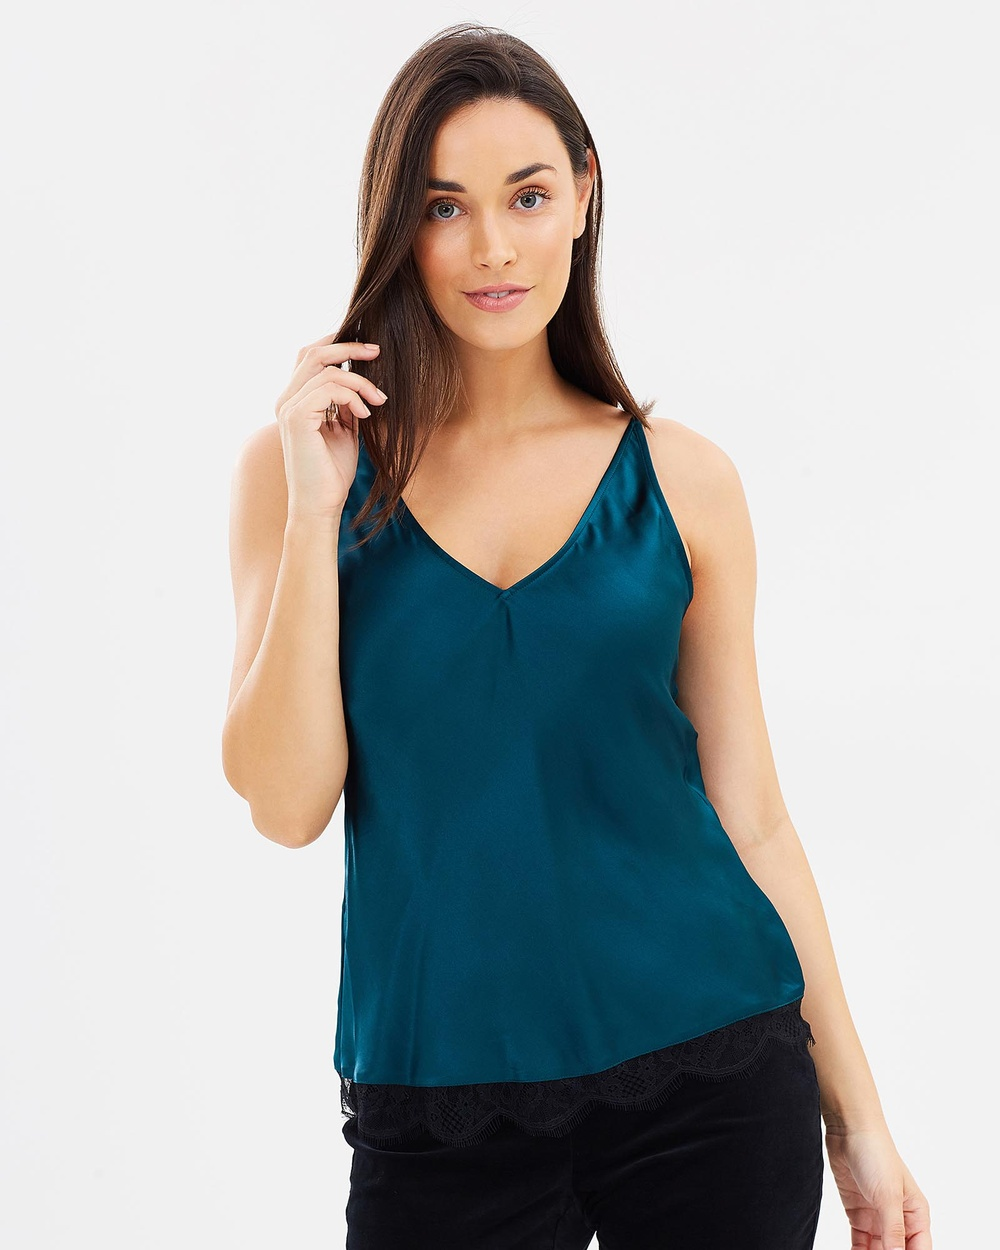 SABA Silk Satin Cami Tops green Silk Satin Cami